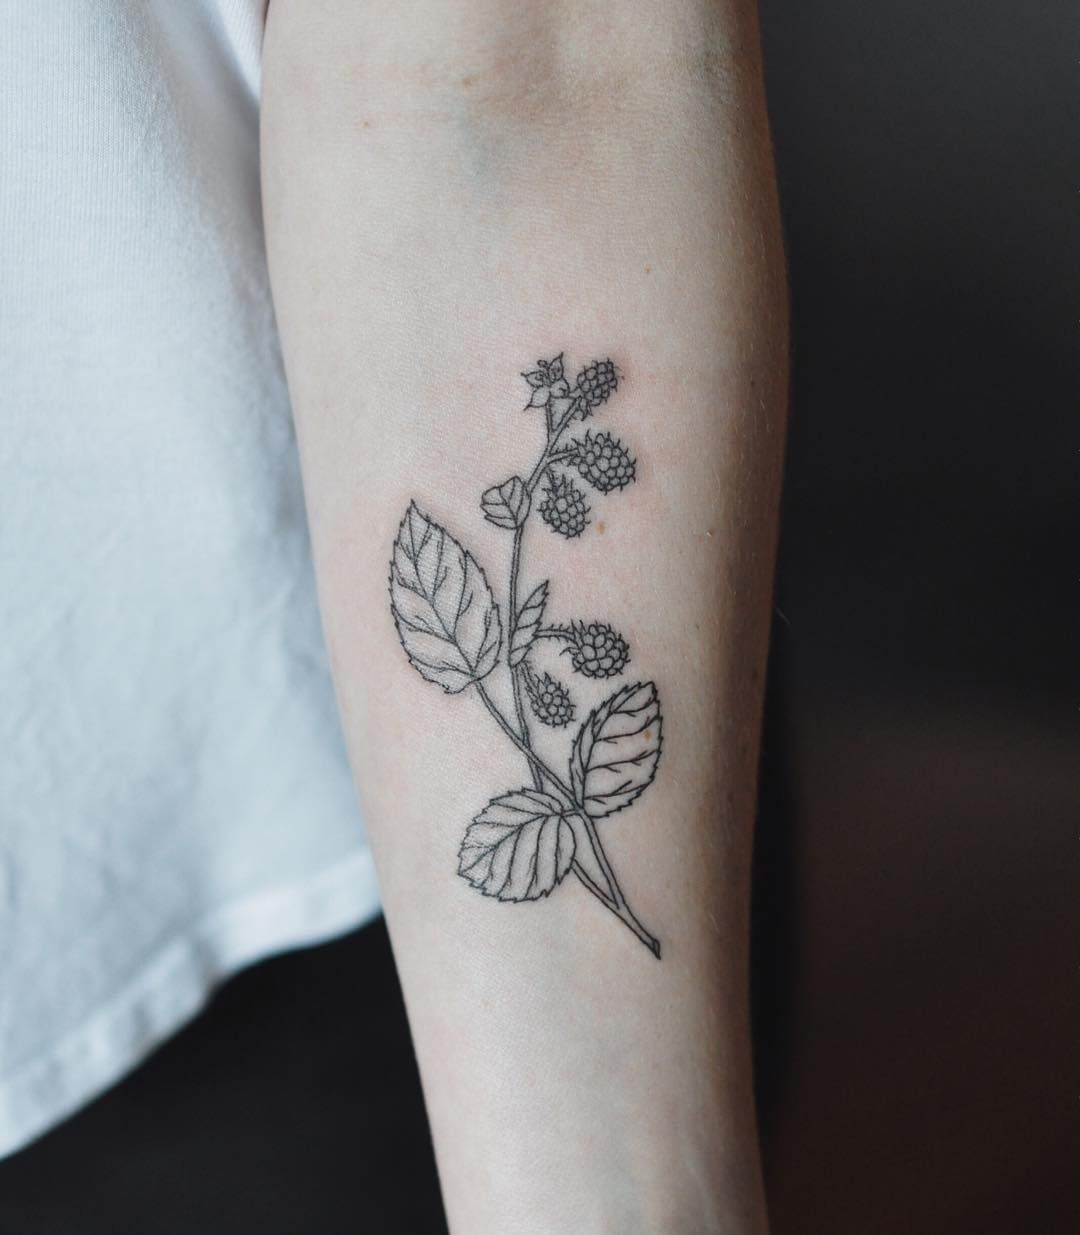 Pin By Laura Kuley On Tattoo: Raspberries For Laura.